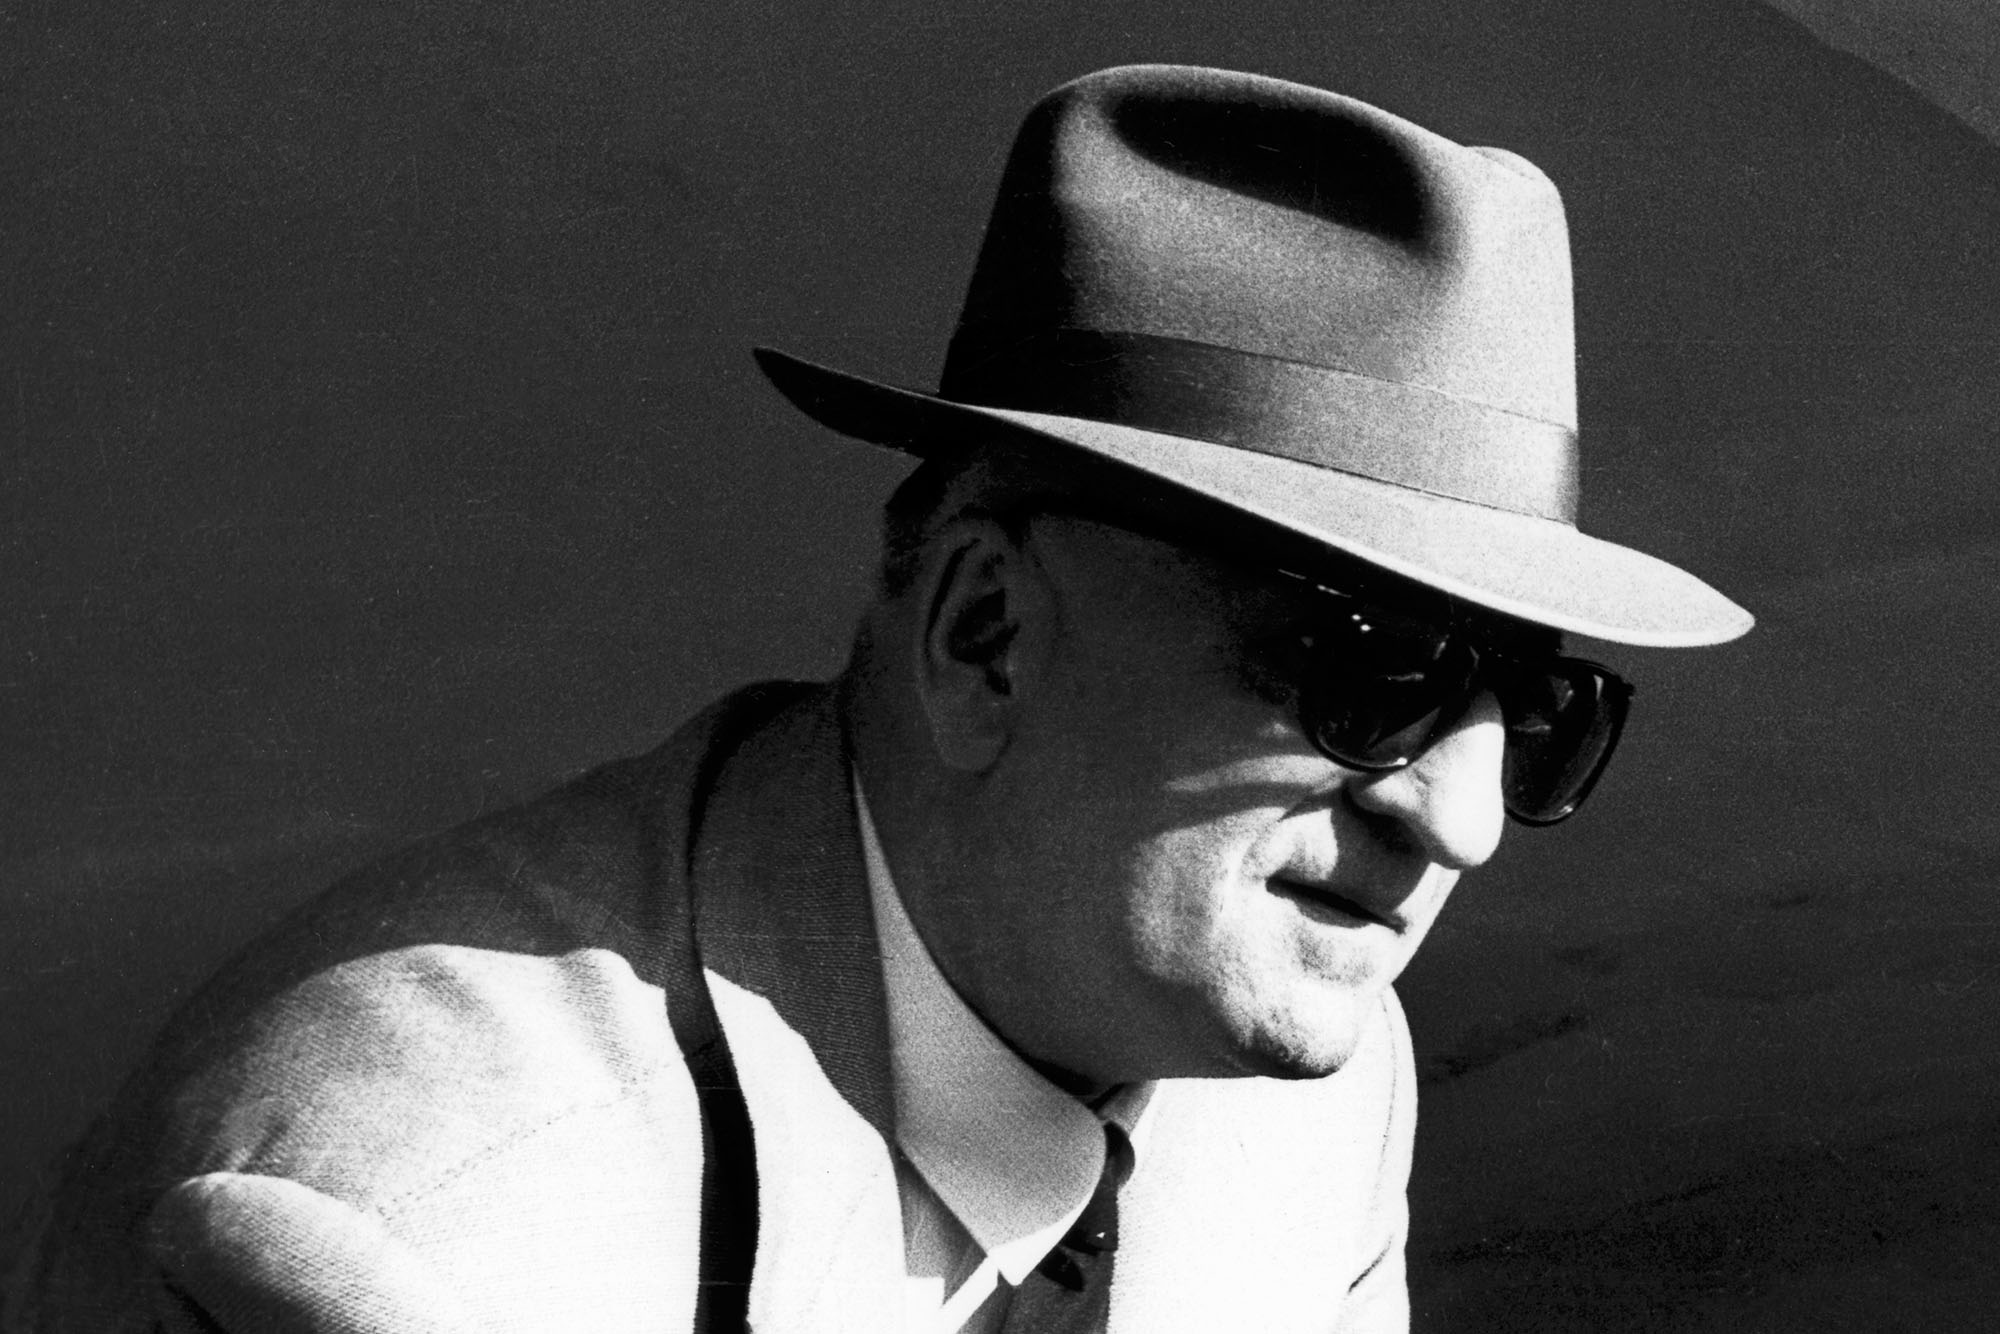 Enzo Ferrari, Grand Prix of Italy, Autodromo Nazionale Monza, 02 September 1956. (Photo by Bernard Cahier/Getty Images)